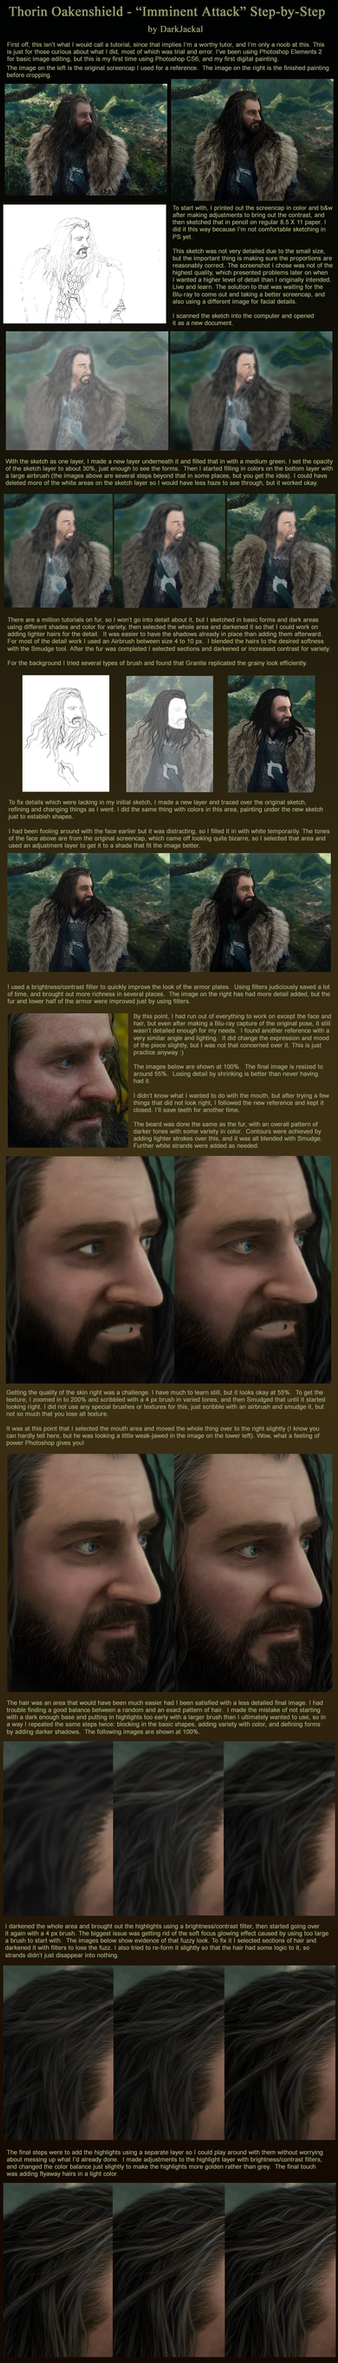 Thorin Oakenshield: Step by Step by DarqueJackal